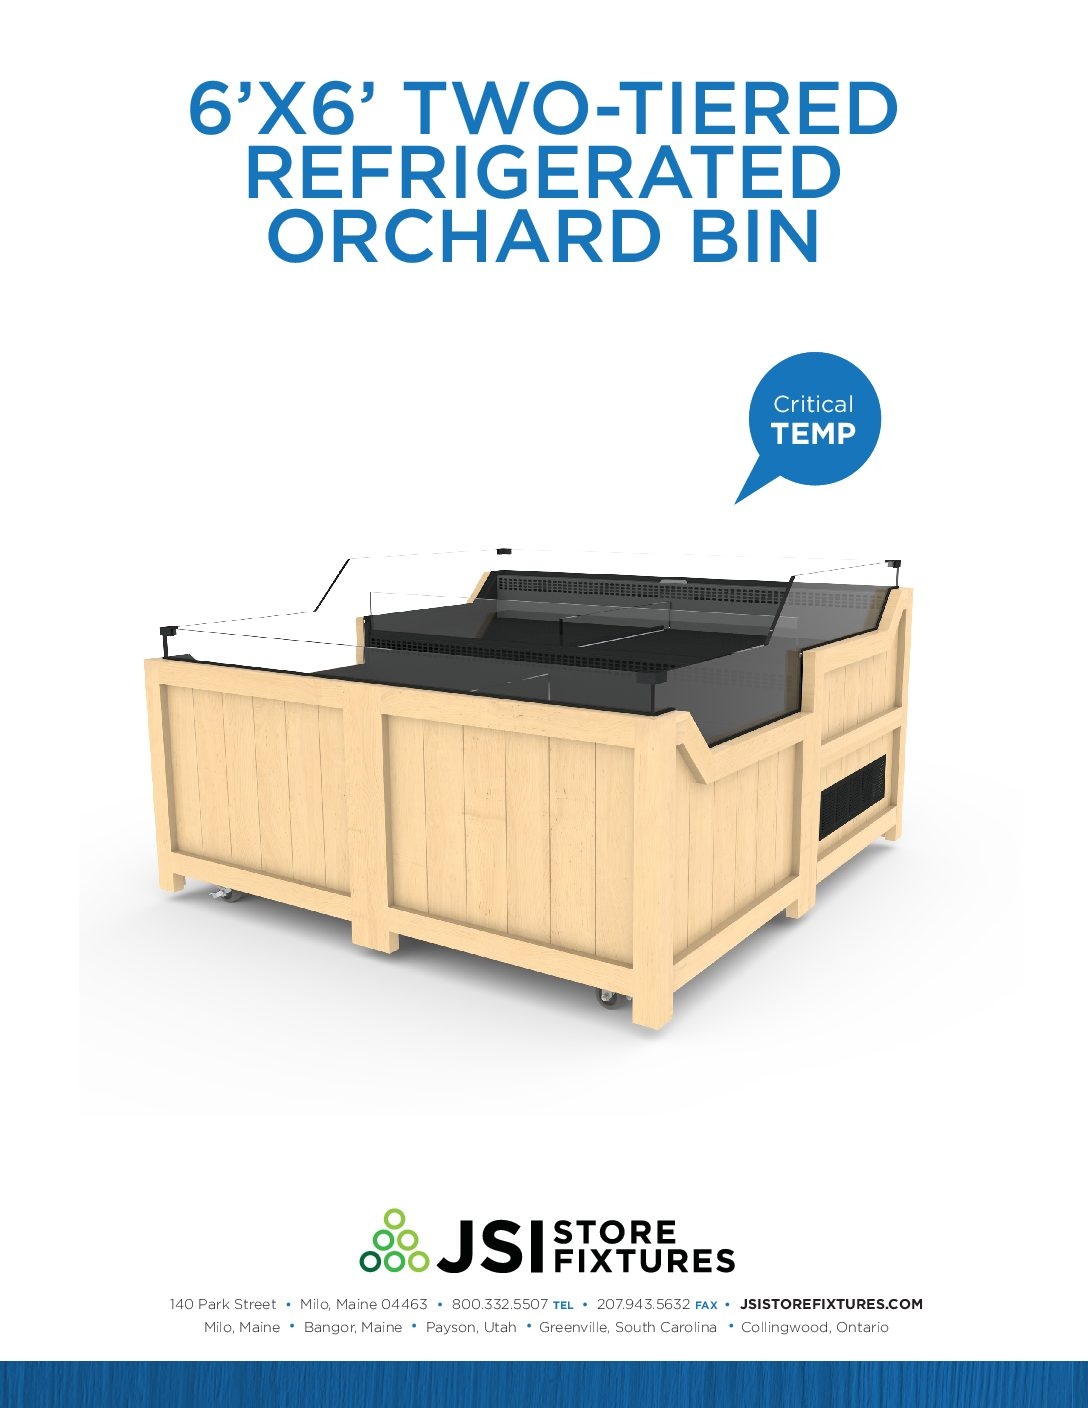 6'x6' Two-Tiered Refrigerated Orchard Bin Spec Sheet